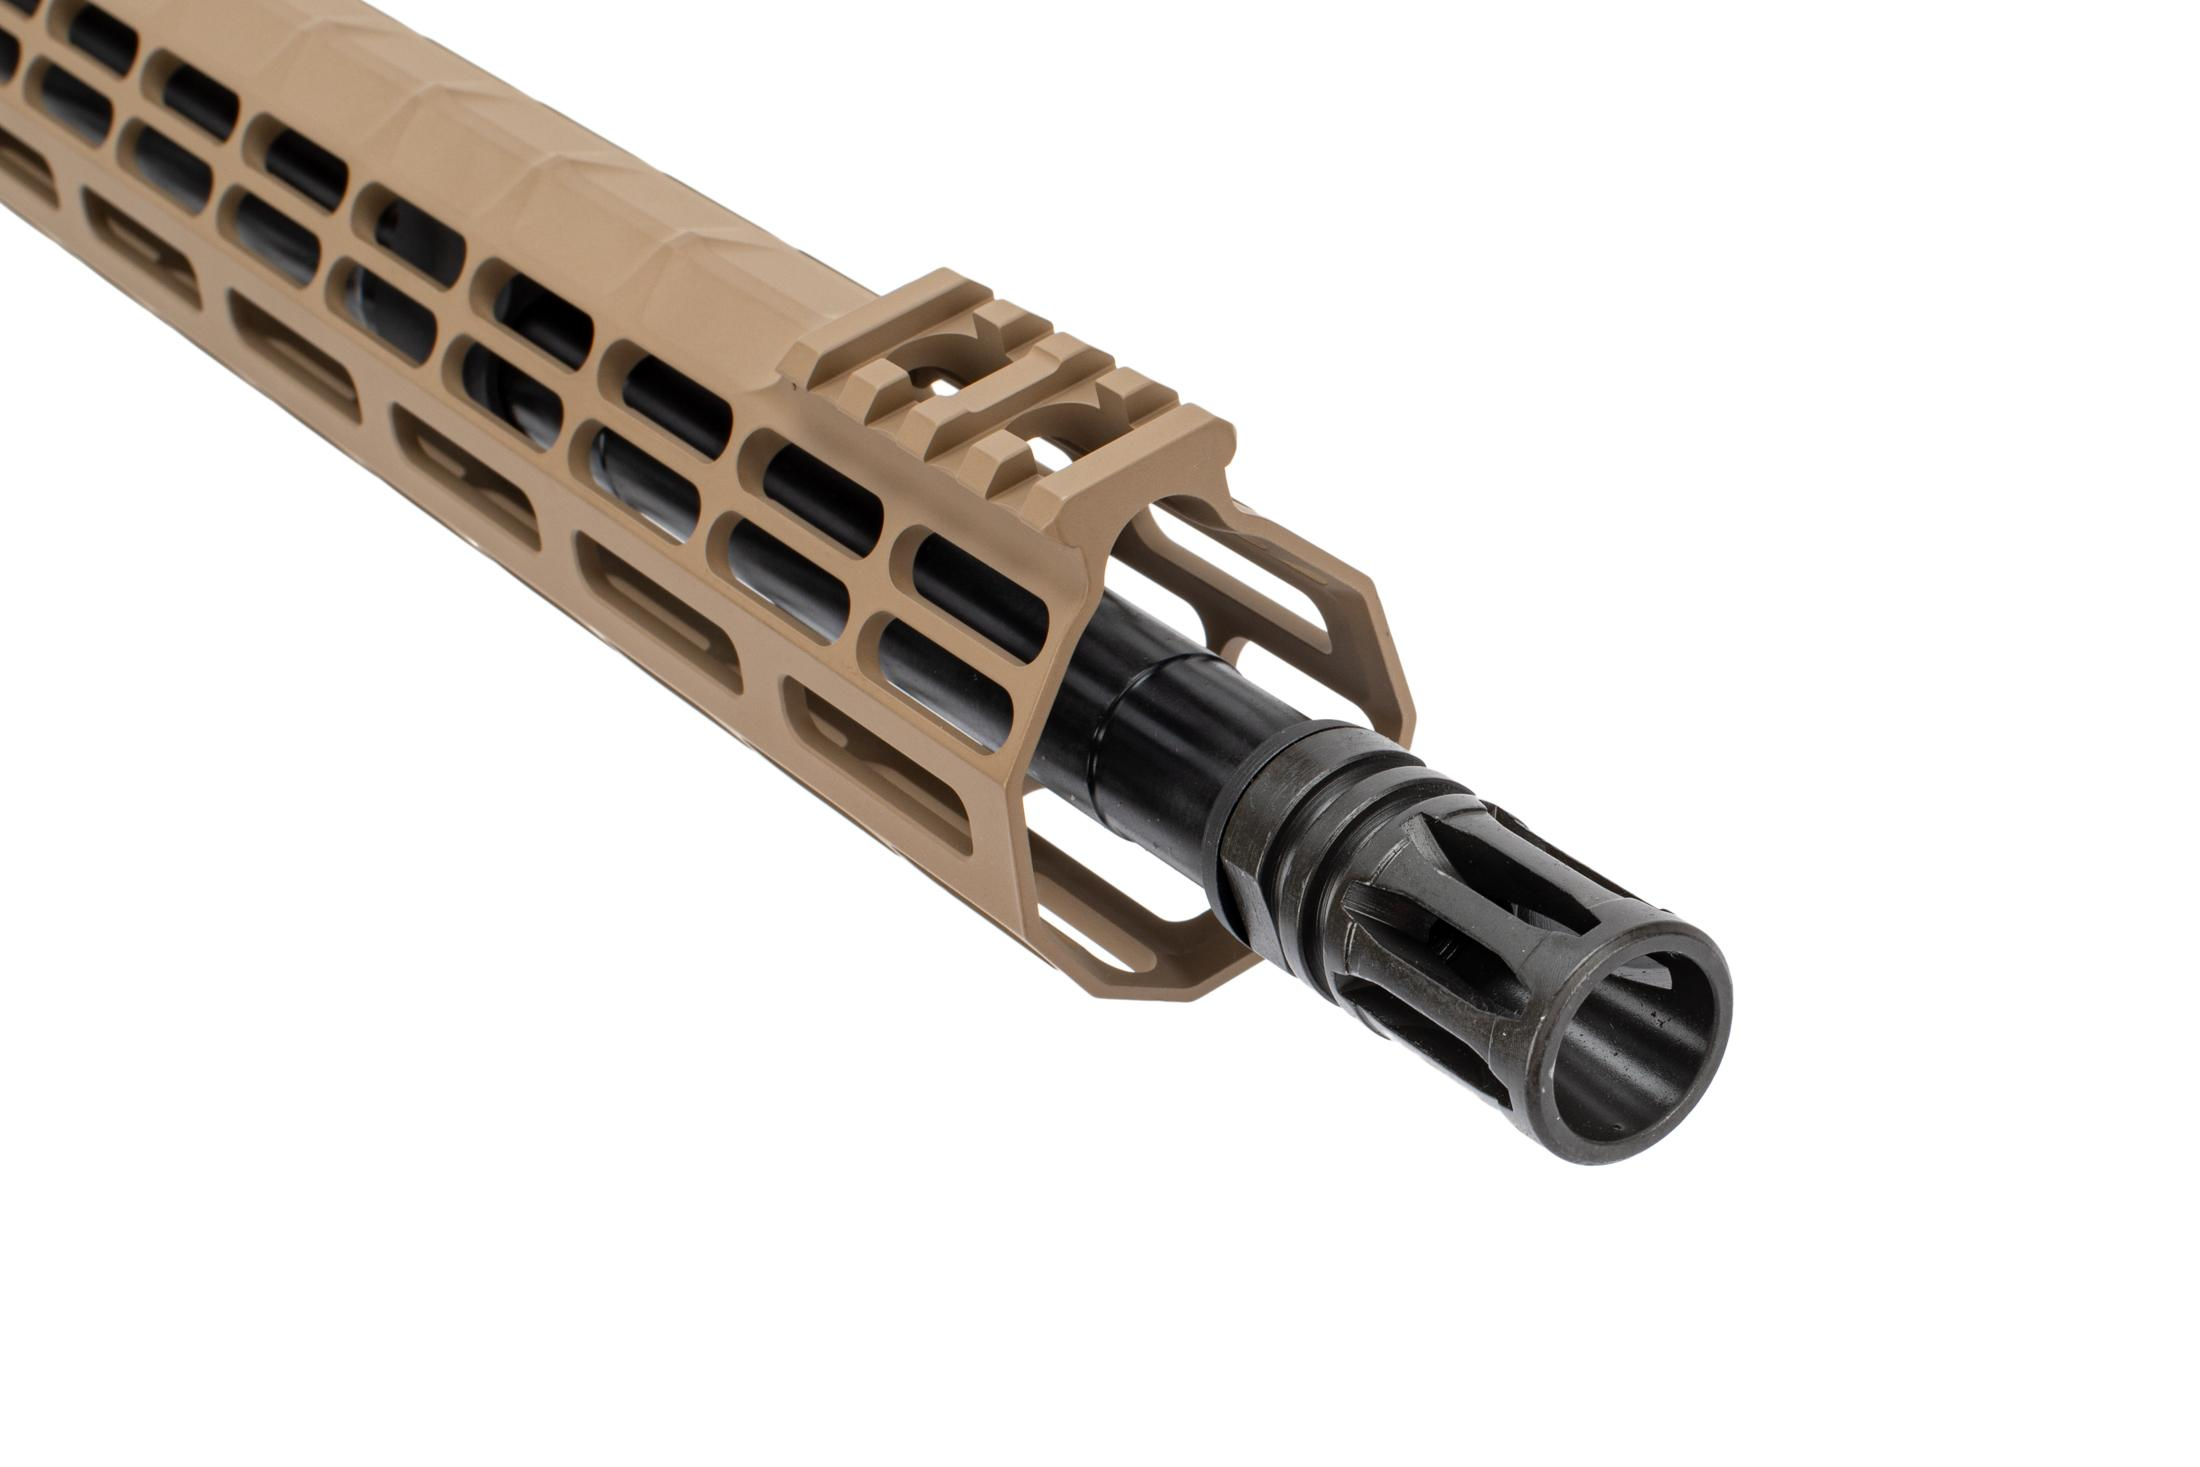 Aero Precision 16 M5 barreled AR308 upper in .308 WIN with Atlas S-ONE M-LOK rail in flat dark earth